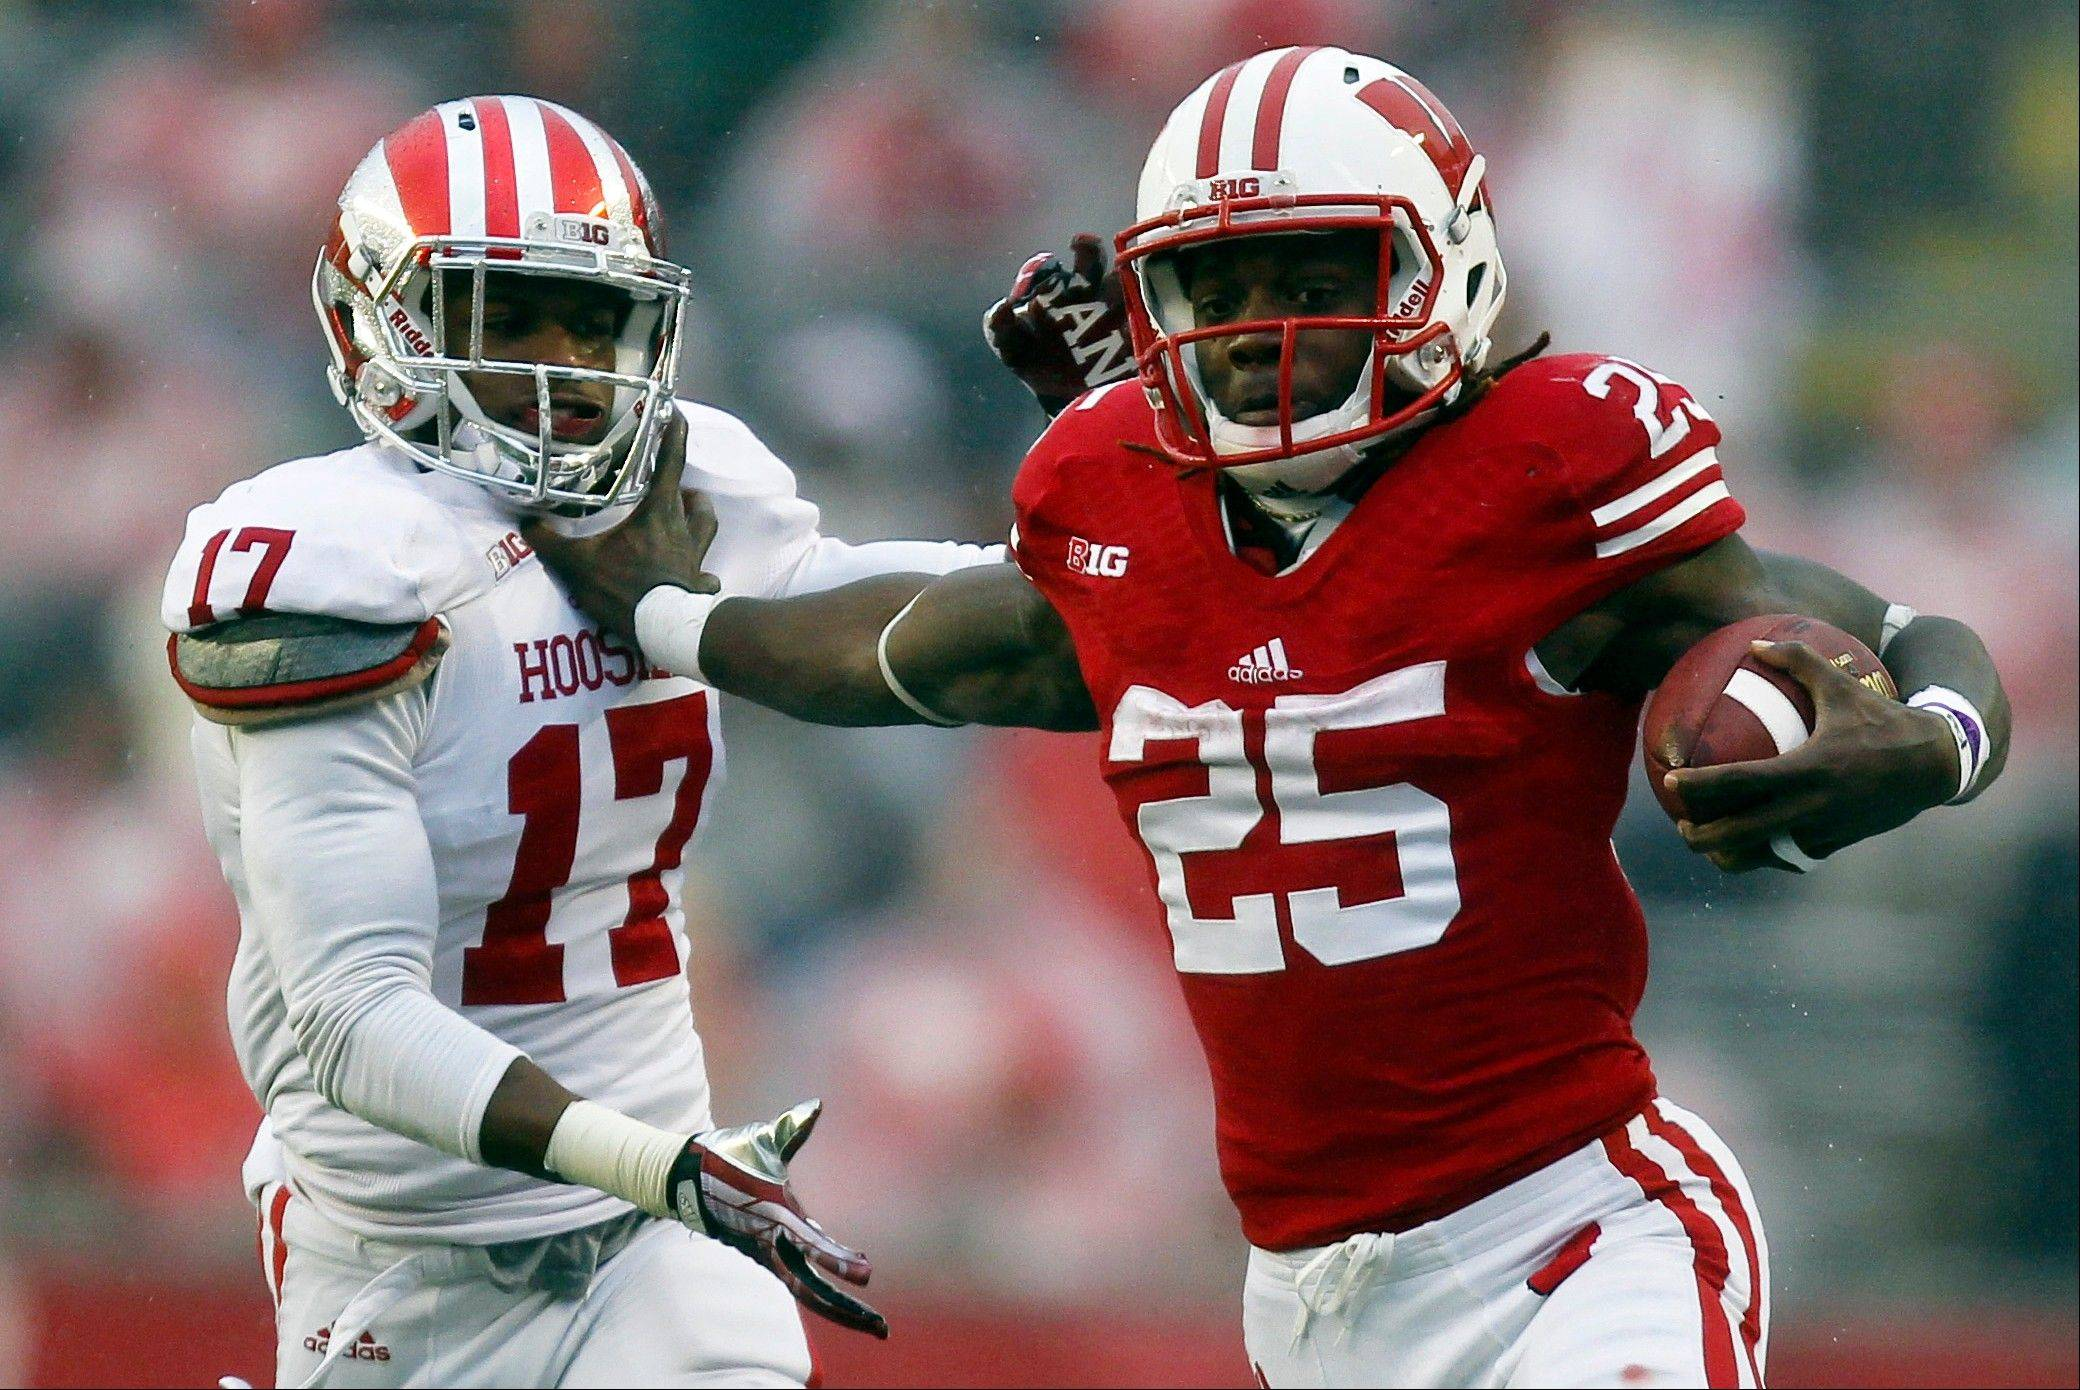 Wisconsin's Melvin Gordon, right, pushes Indiana's Michael Hunter away during the first half of last Saturday's game in Madison.